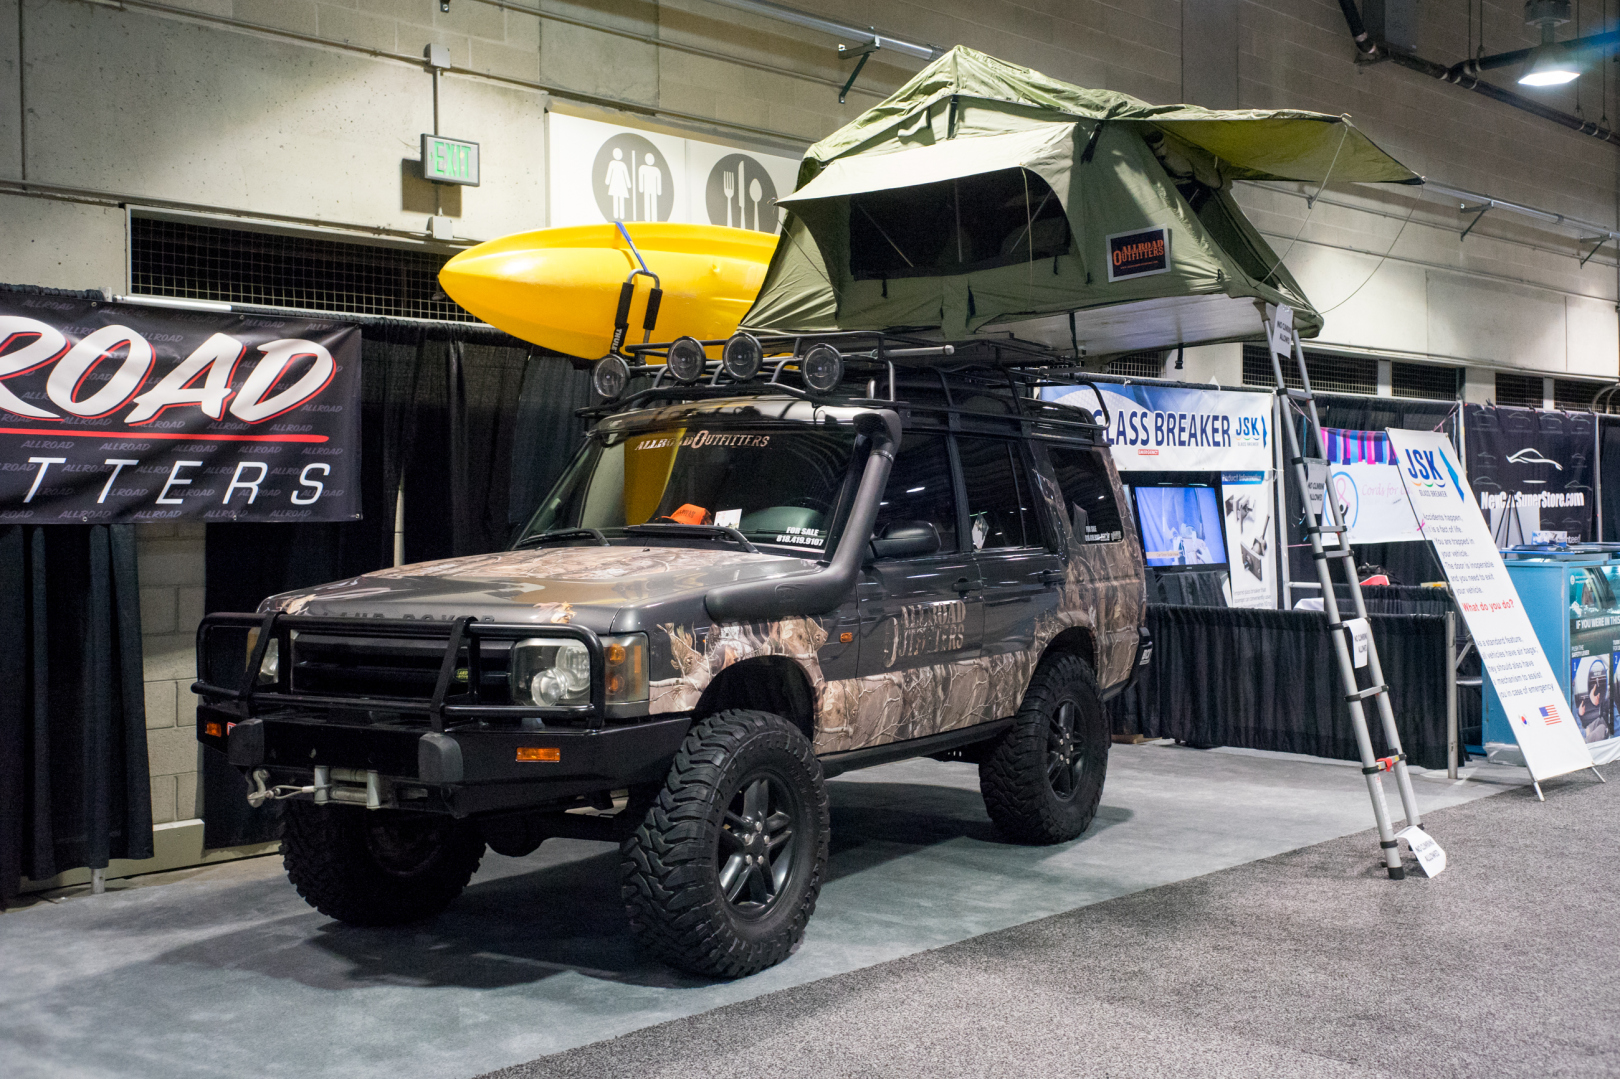 land rover c&ing tent & land rover camping tent   ilovehatephotography